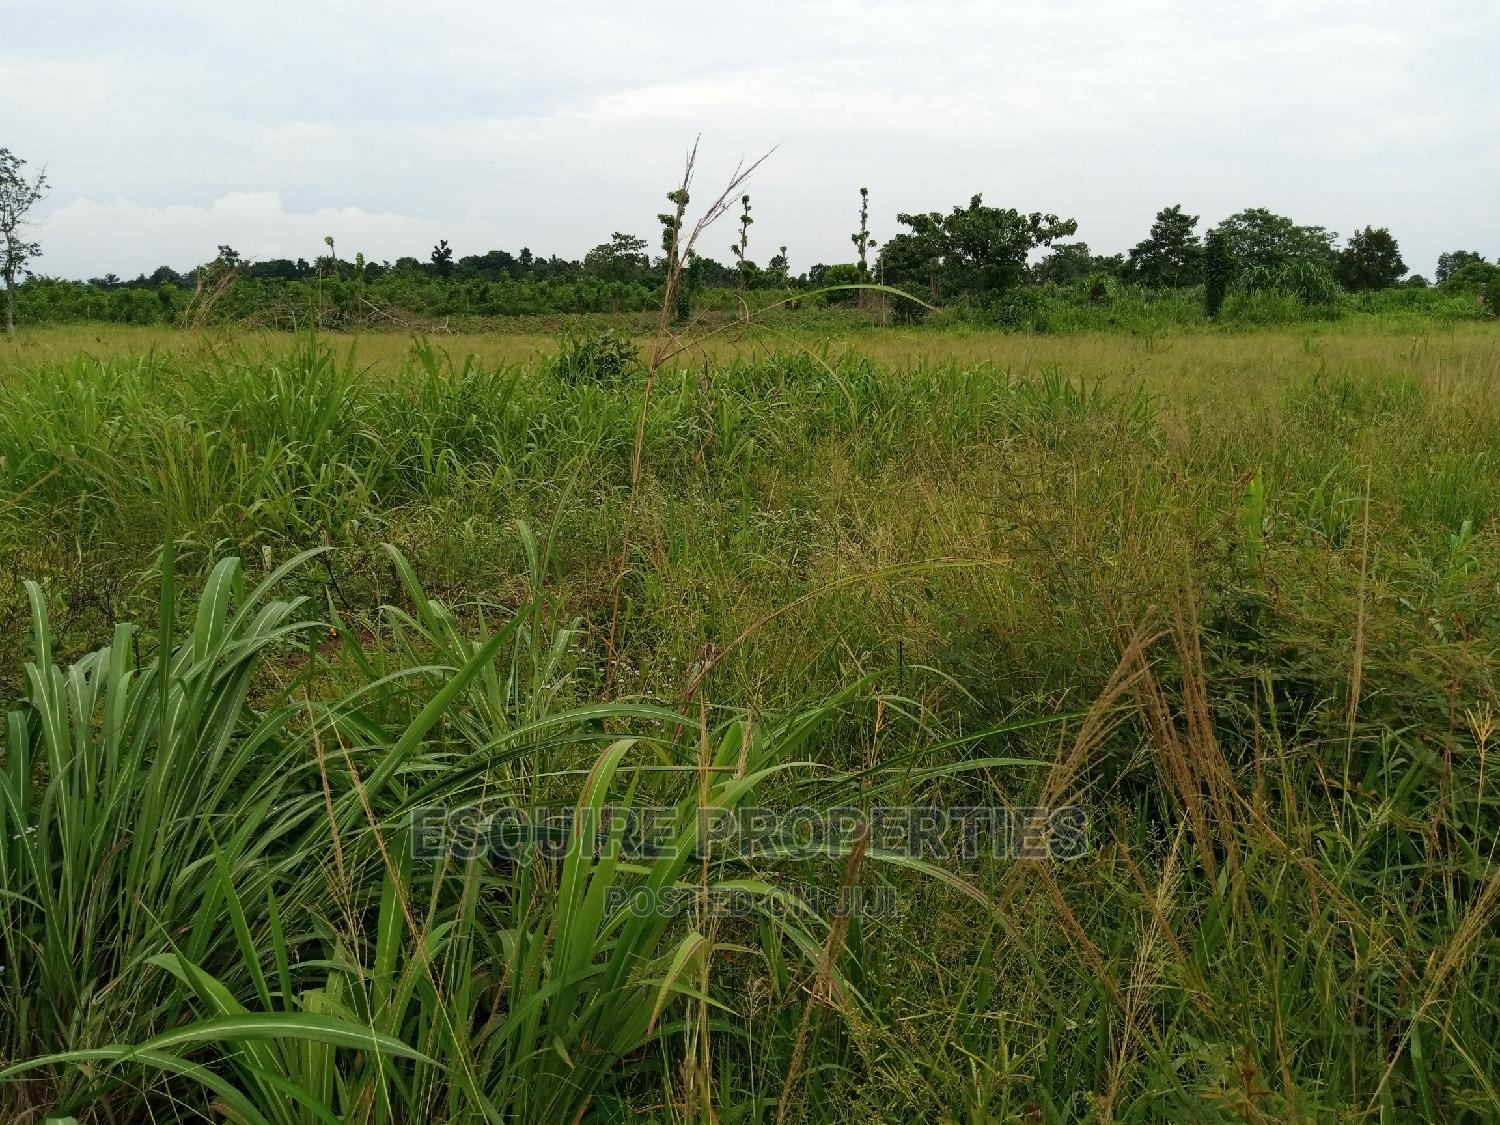 4plot of Land for Lease at Ibagwa Nike | Land & Plots for Rent for sale in Enugu, Enugu State, Nigeria